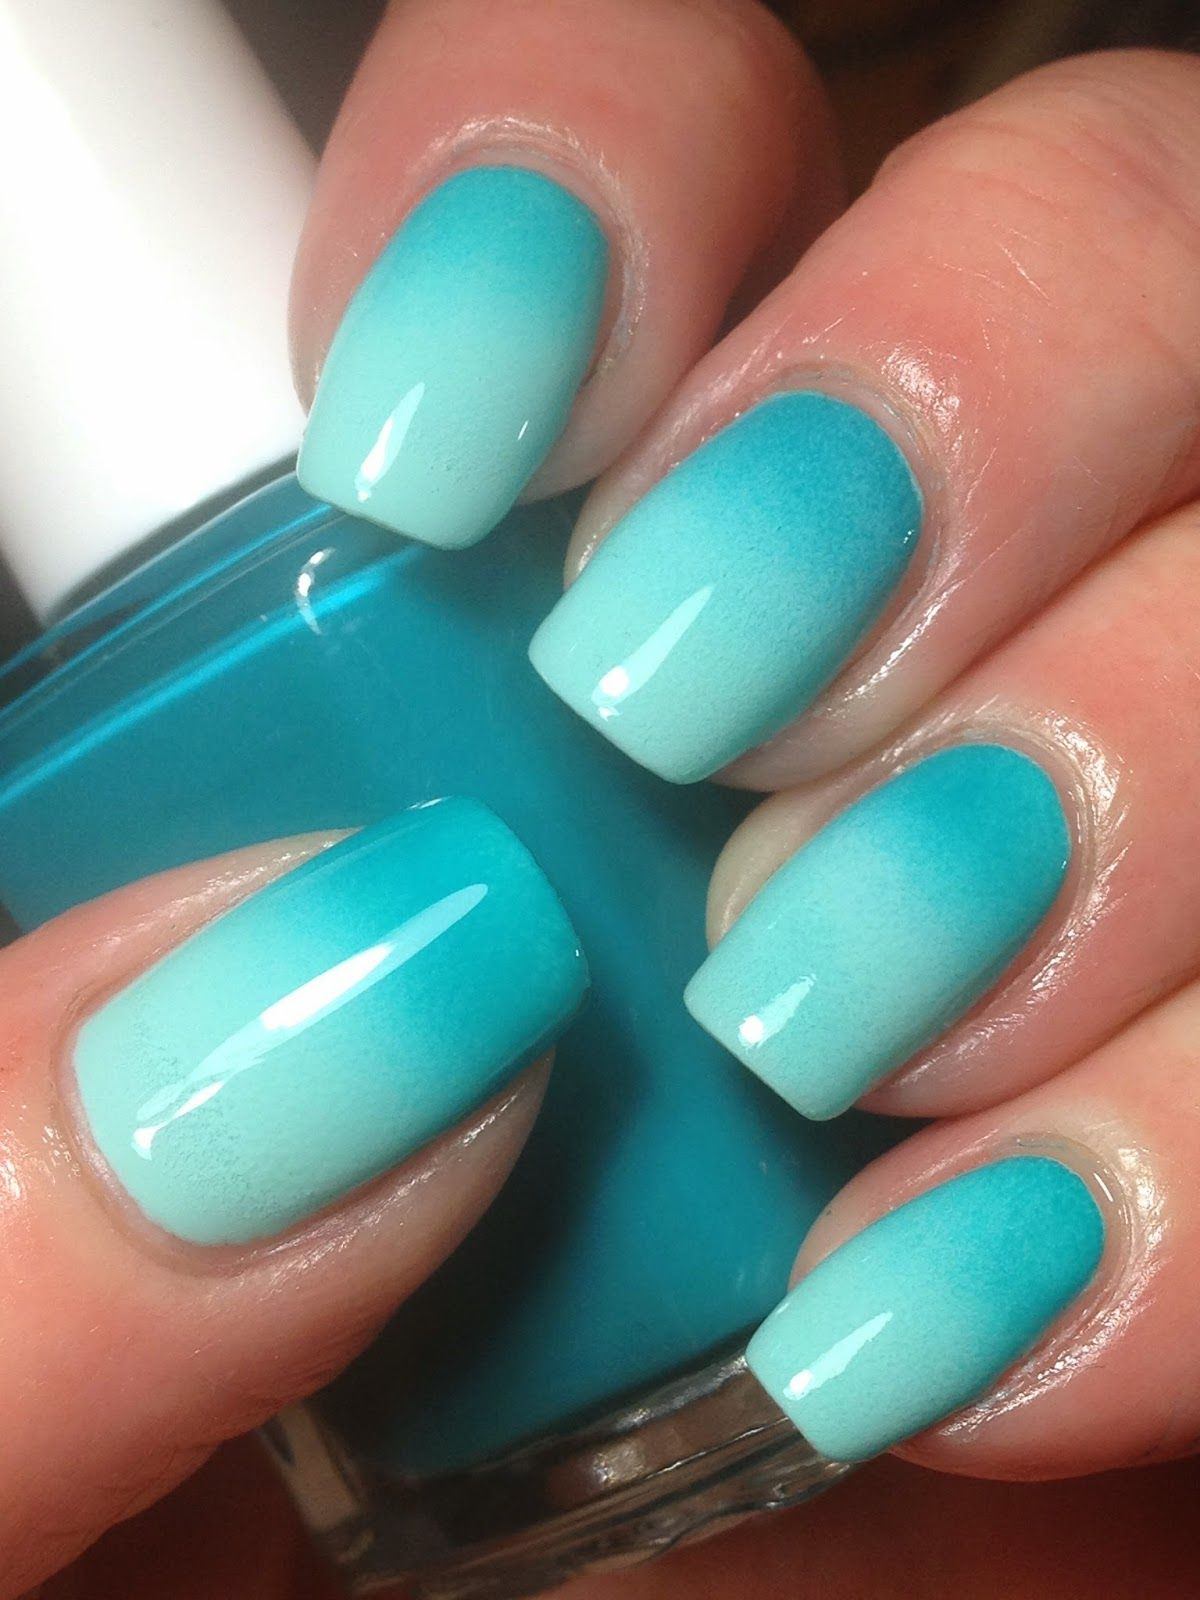 100 Breathtaking Ombre Nails Has Become A Highly Por Fashion Trend The